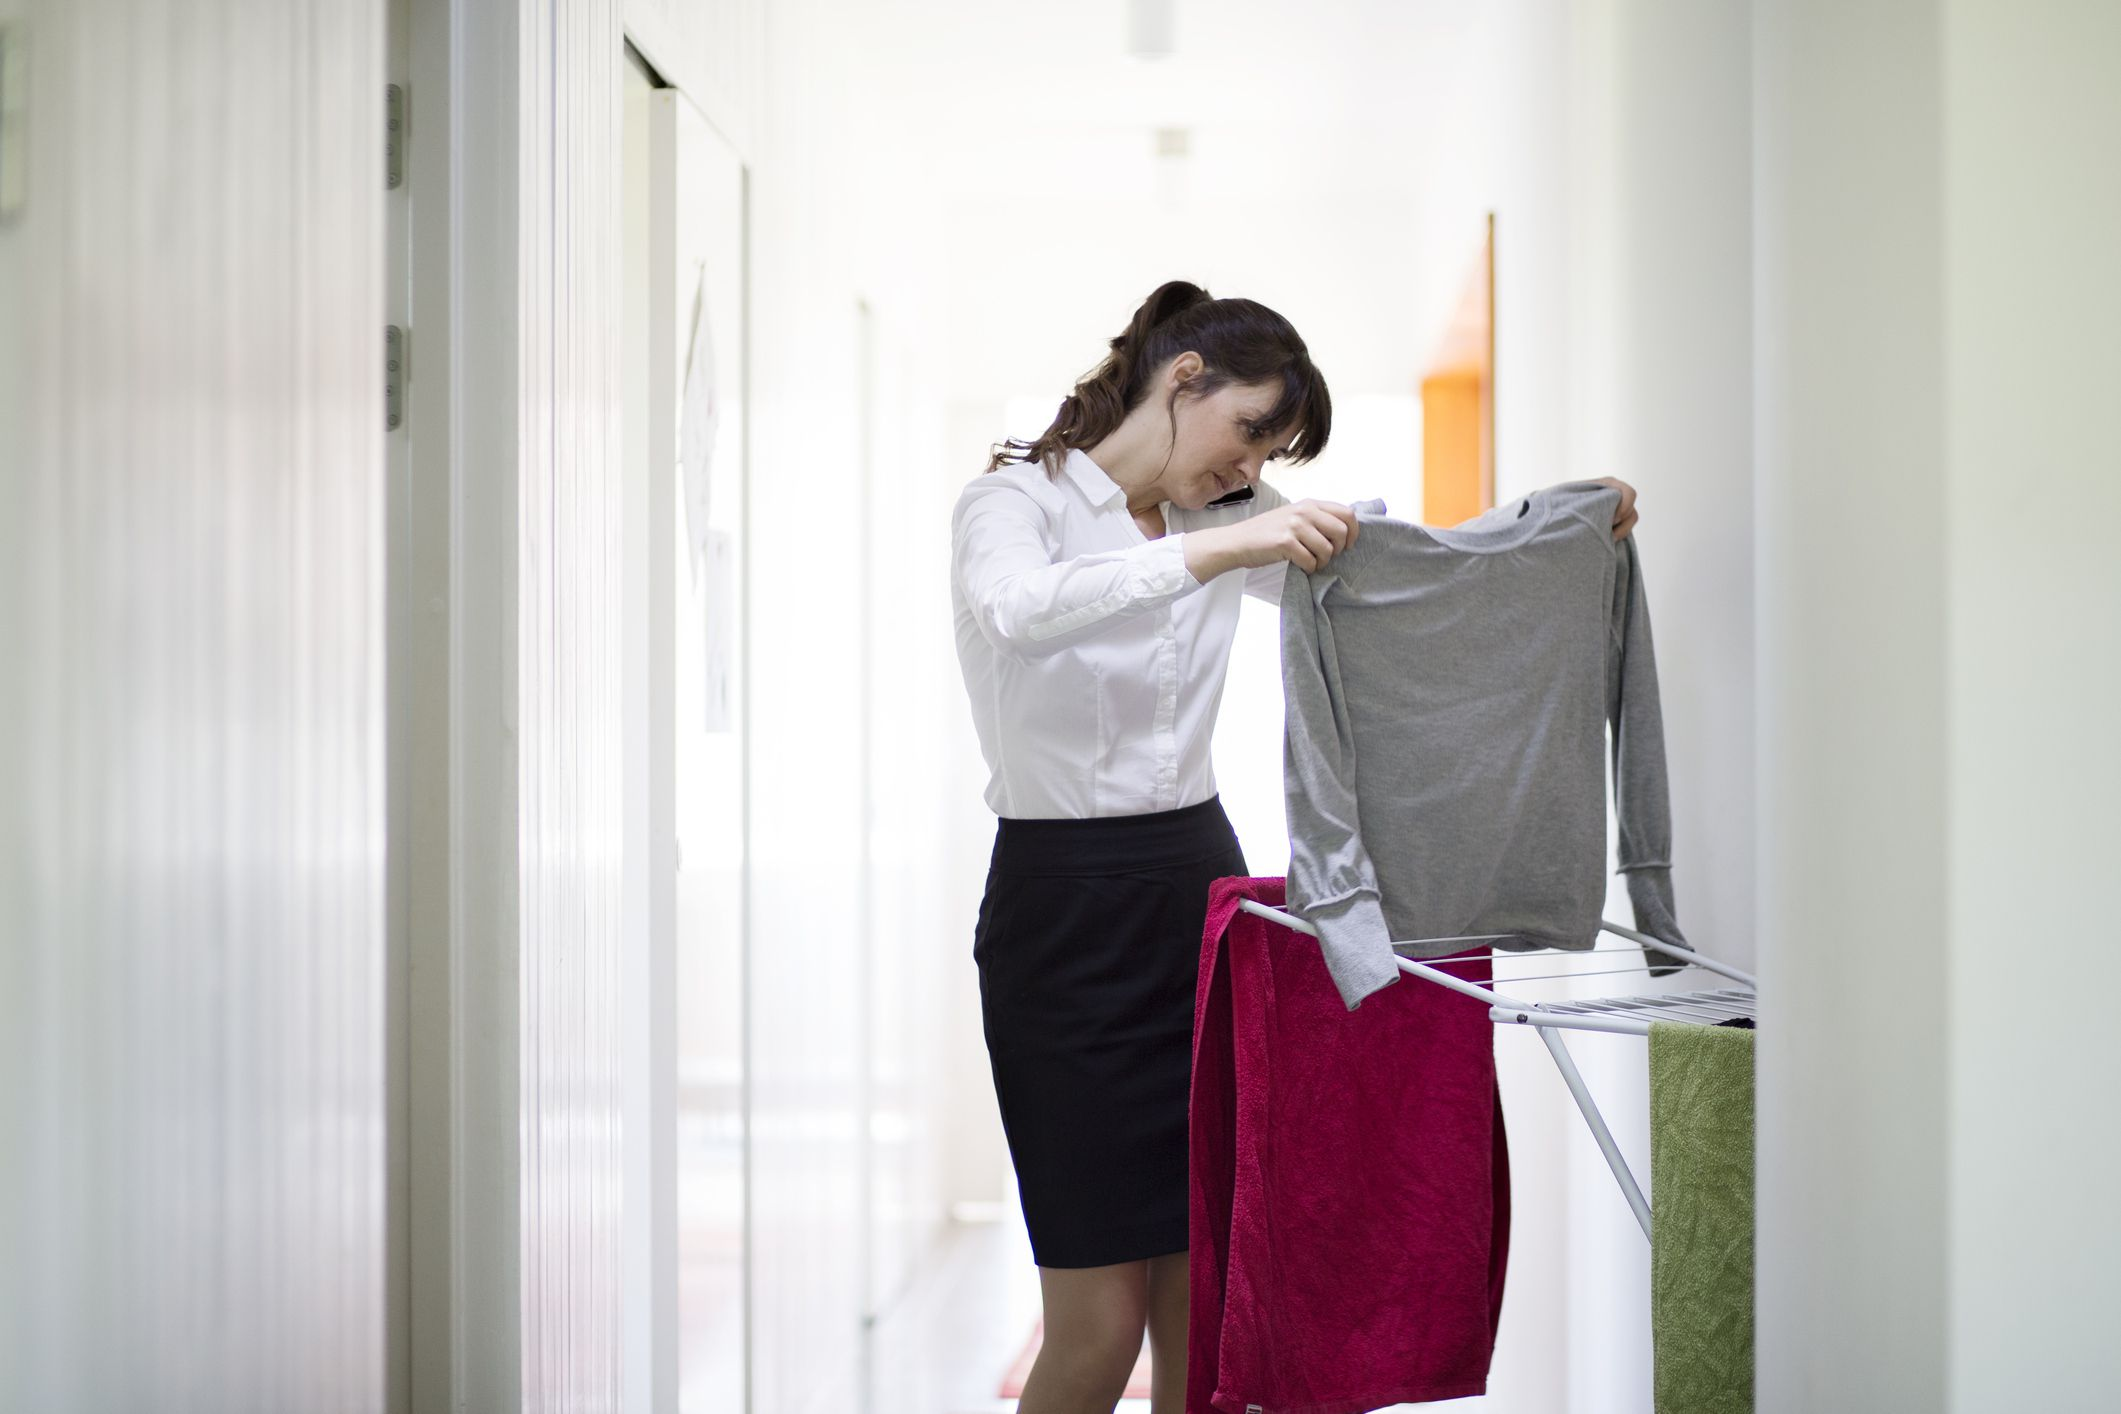 Clothes Dryer Shrinks Clothes ~ How to prevent clothes from shrinking and stretching